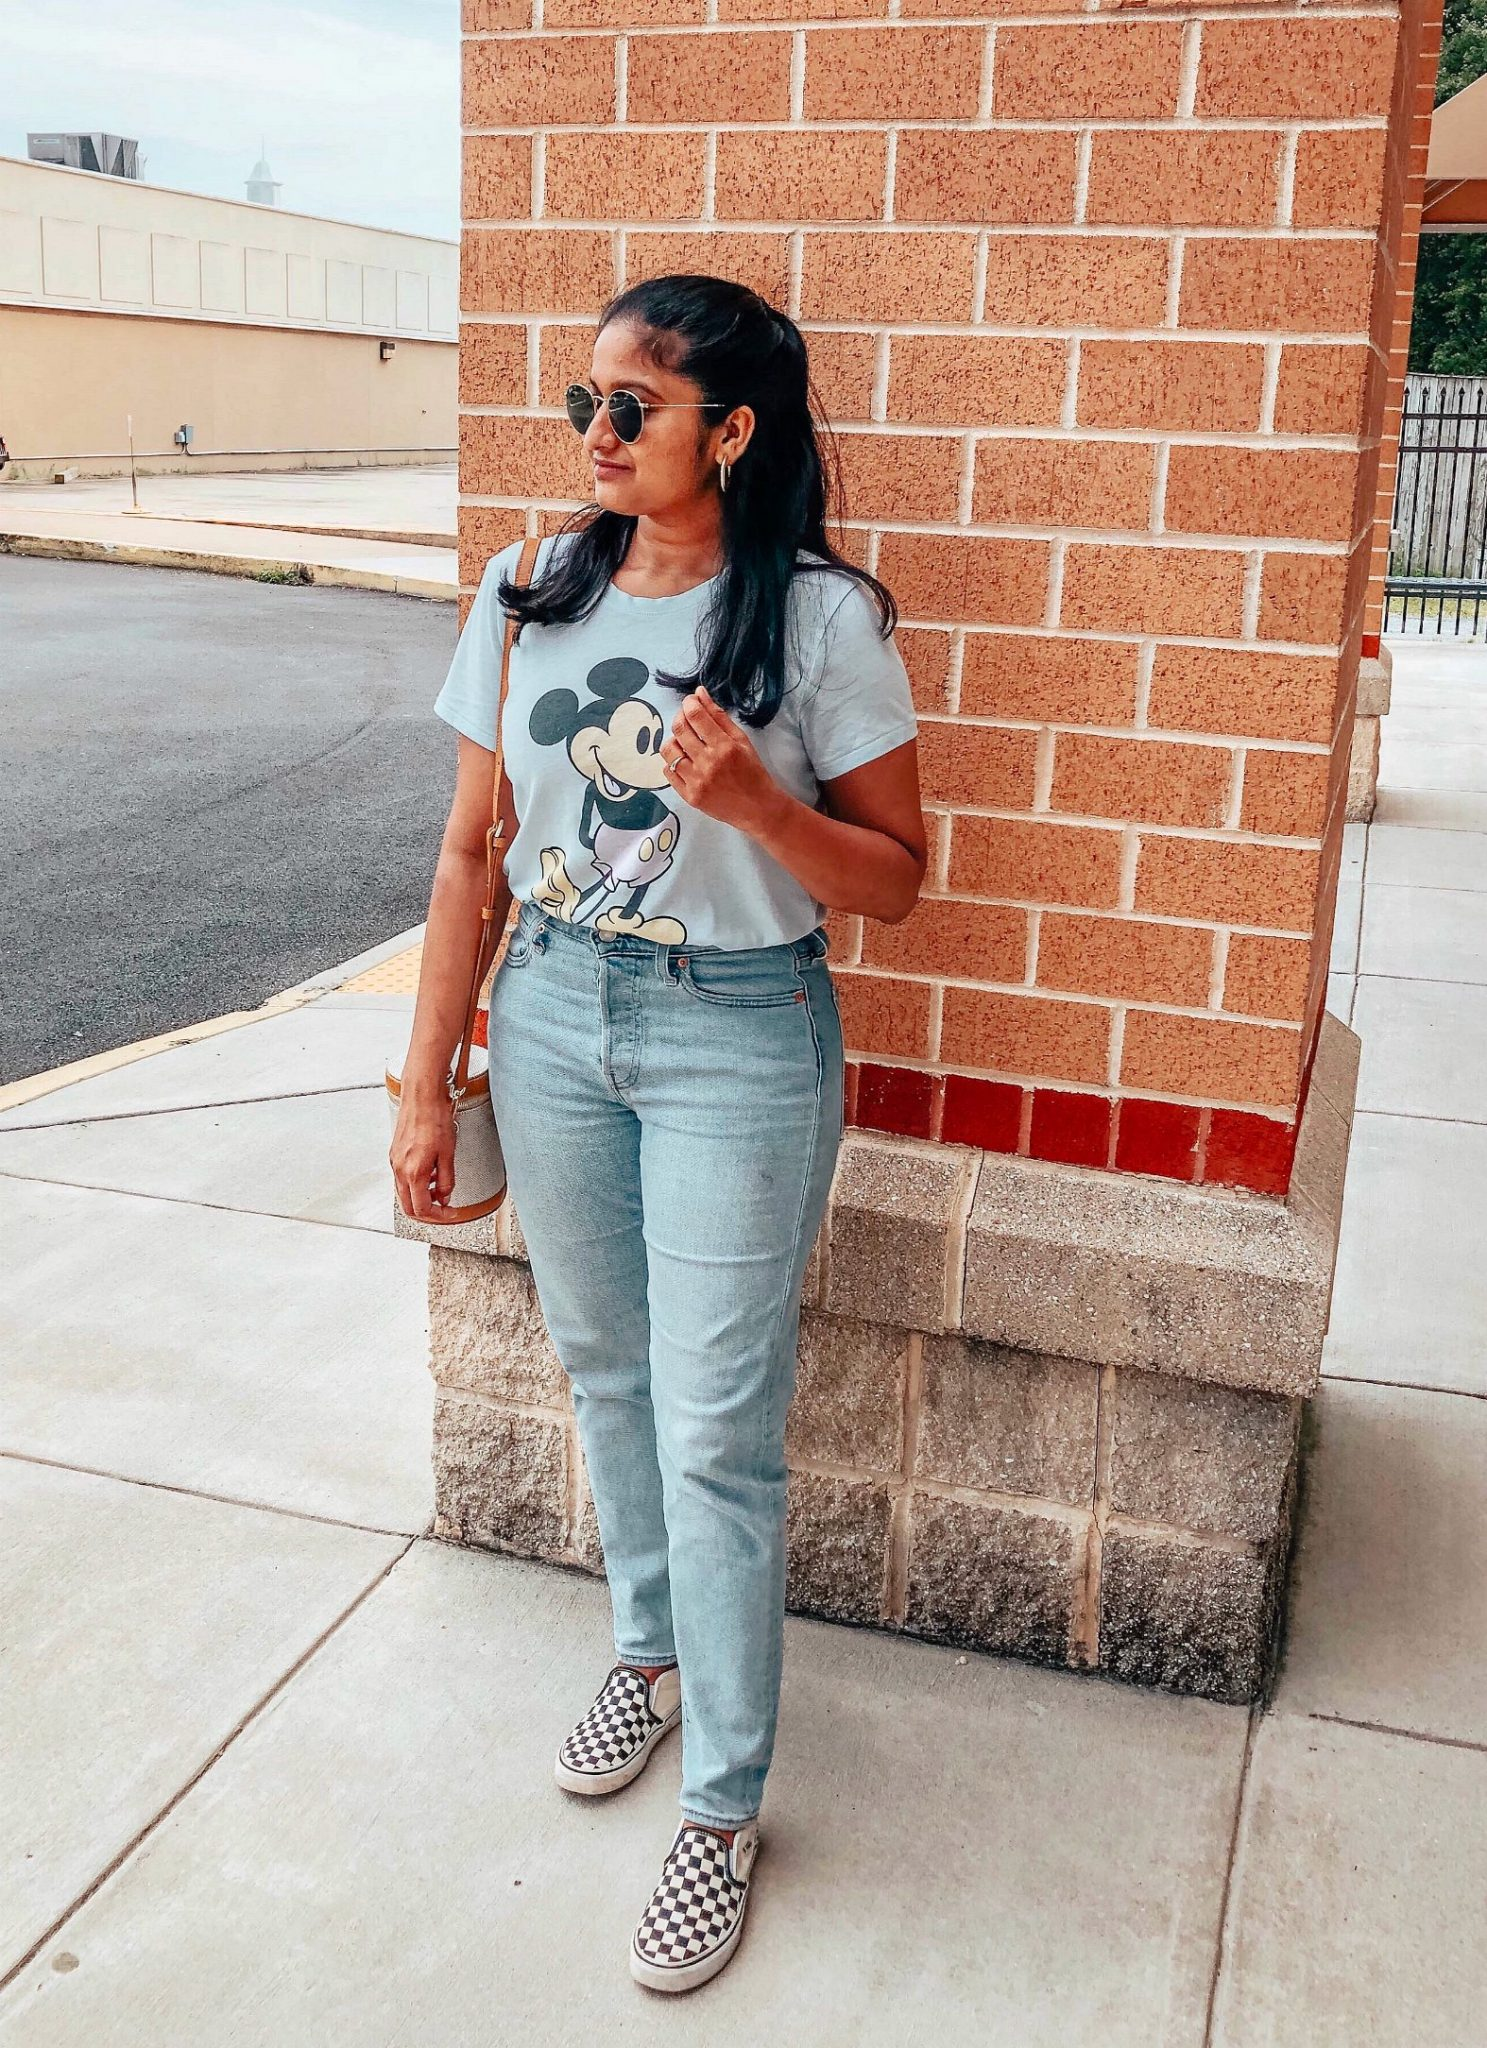 Levis high waisted crop jeans styled by top US modest blog, Dreaming Loud: image of a woman wearing a Target Mickey Mouse shirt, Levis high waisted jeans, Paravel crossbody bag, Madewell hoop earrings,  and Ray Ban round sunglasses